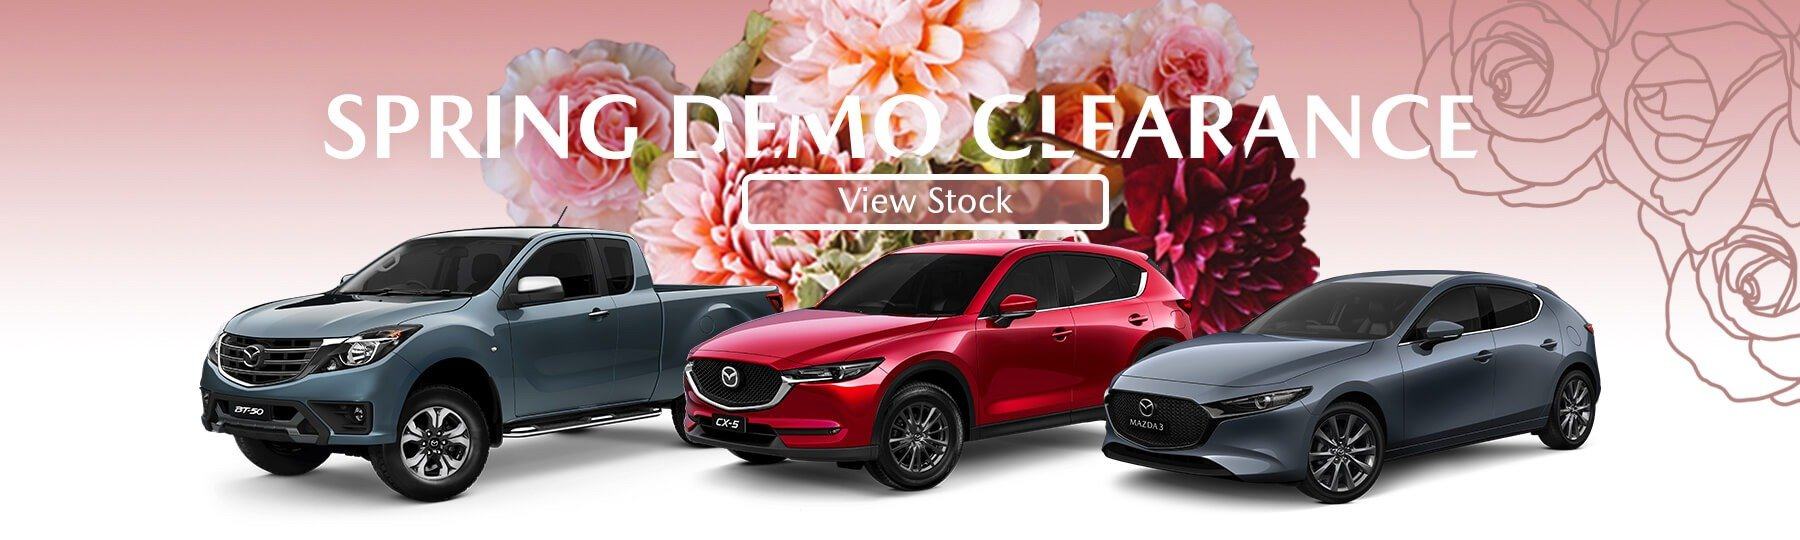 Penfold Mazda Spring Demo Clearance